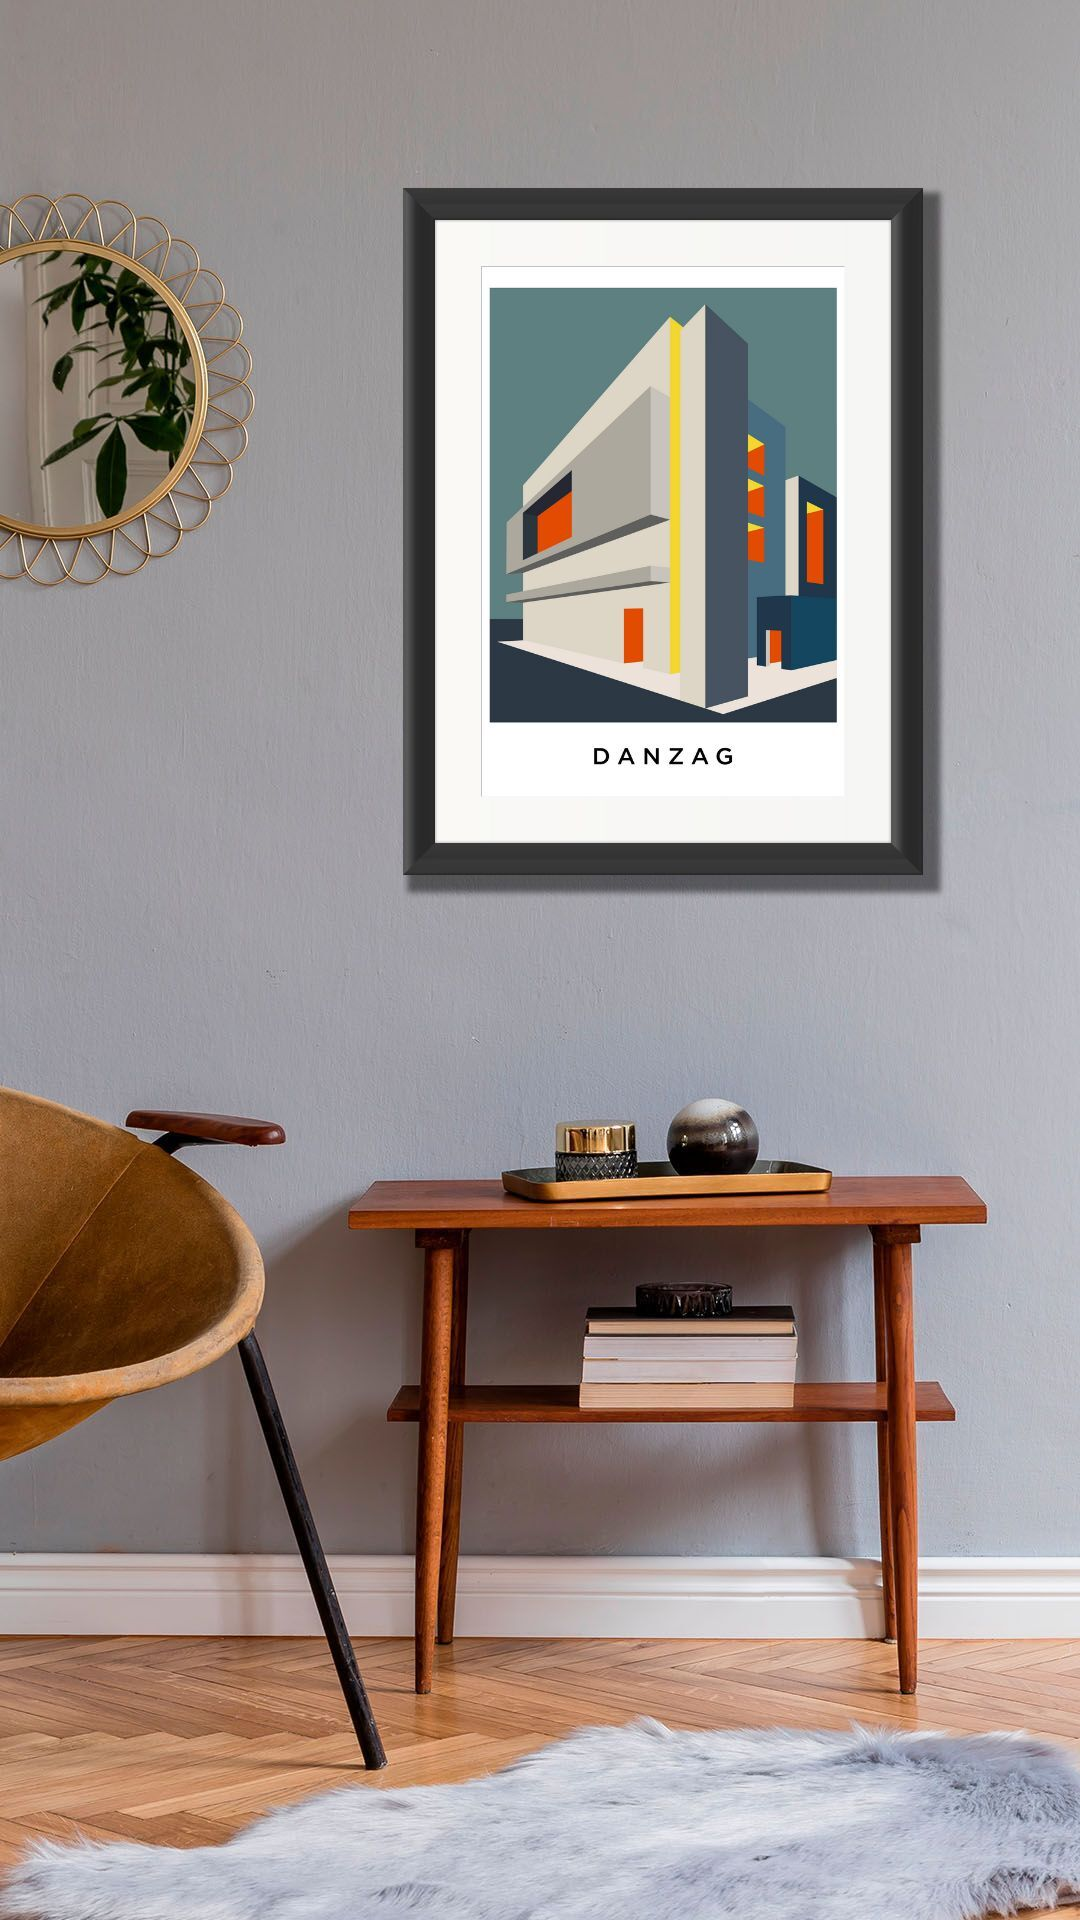 Danzag . Limited Edition Giclee Print